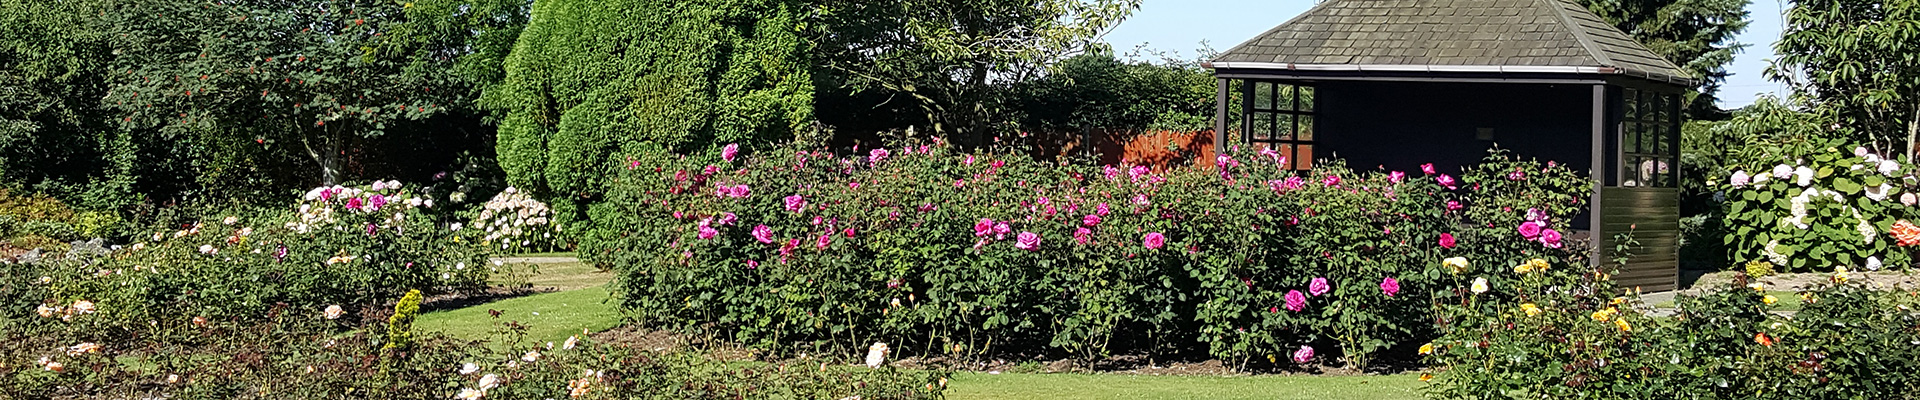 Photograph of flowering roses in the crematorium gardens